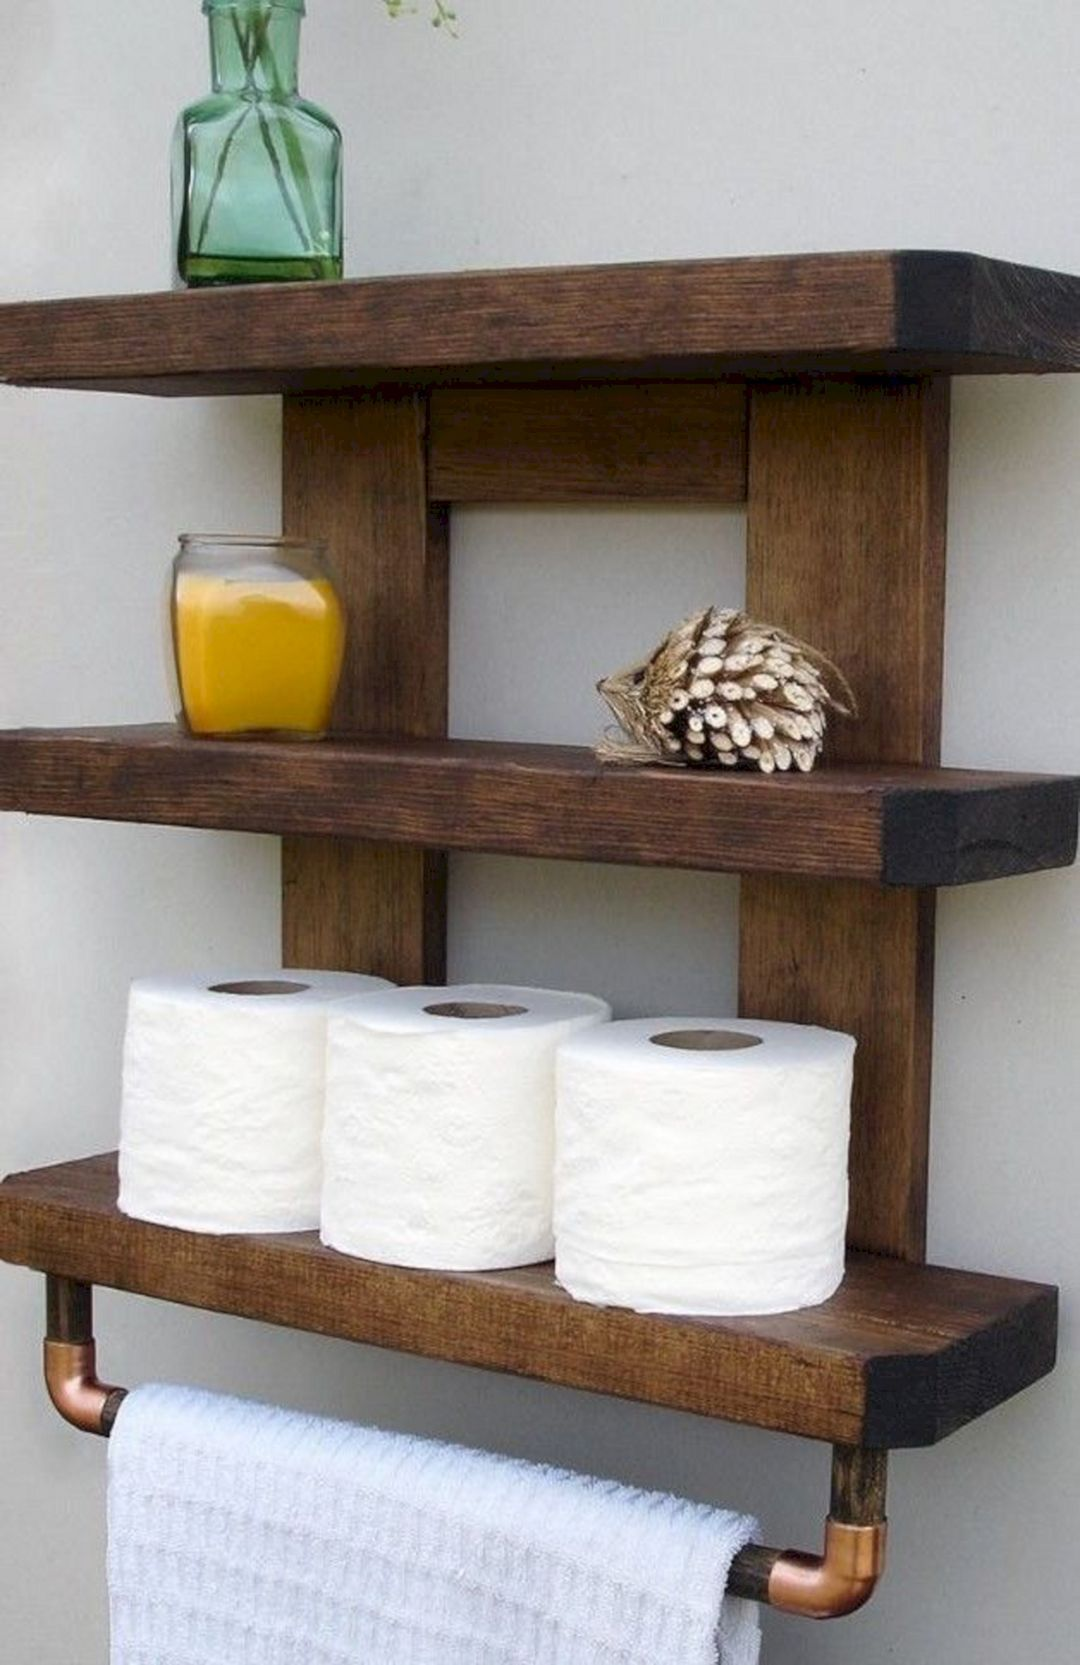 20 Extraordinary Rustic Bathroom Wall Shelves And Organization